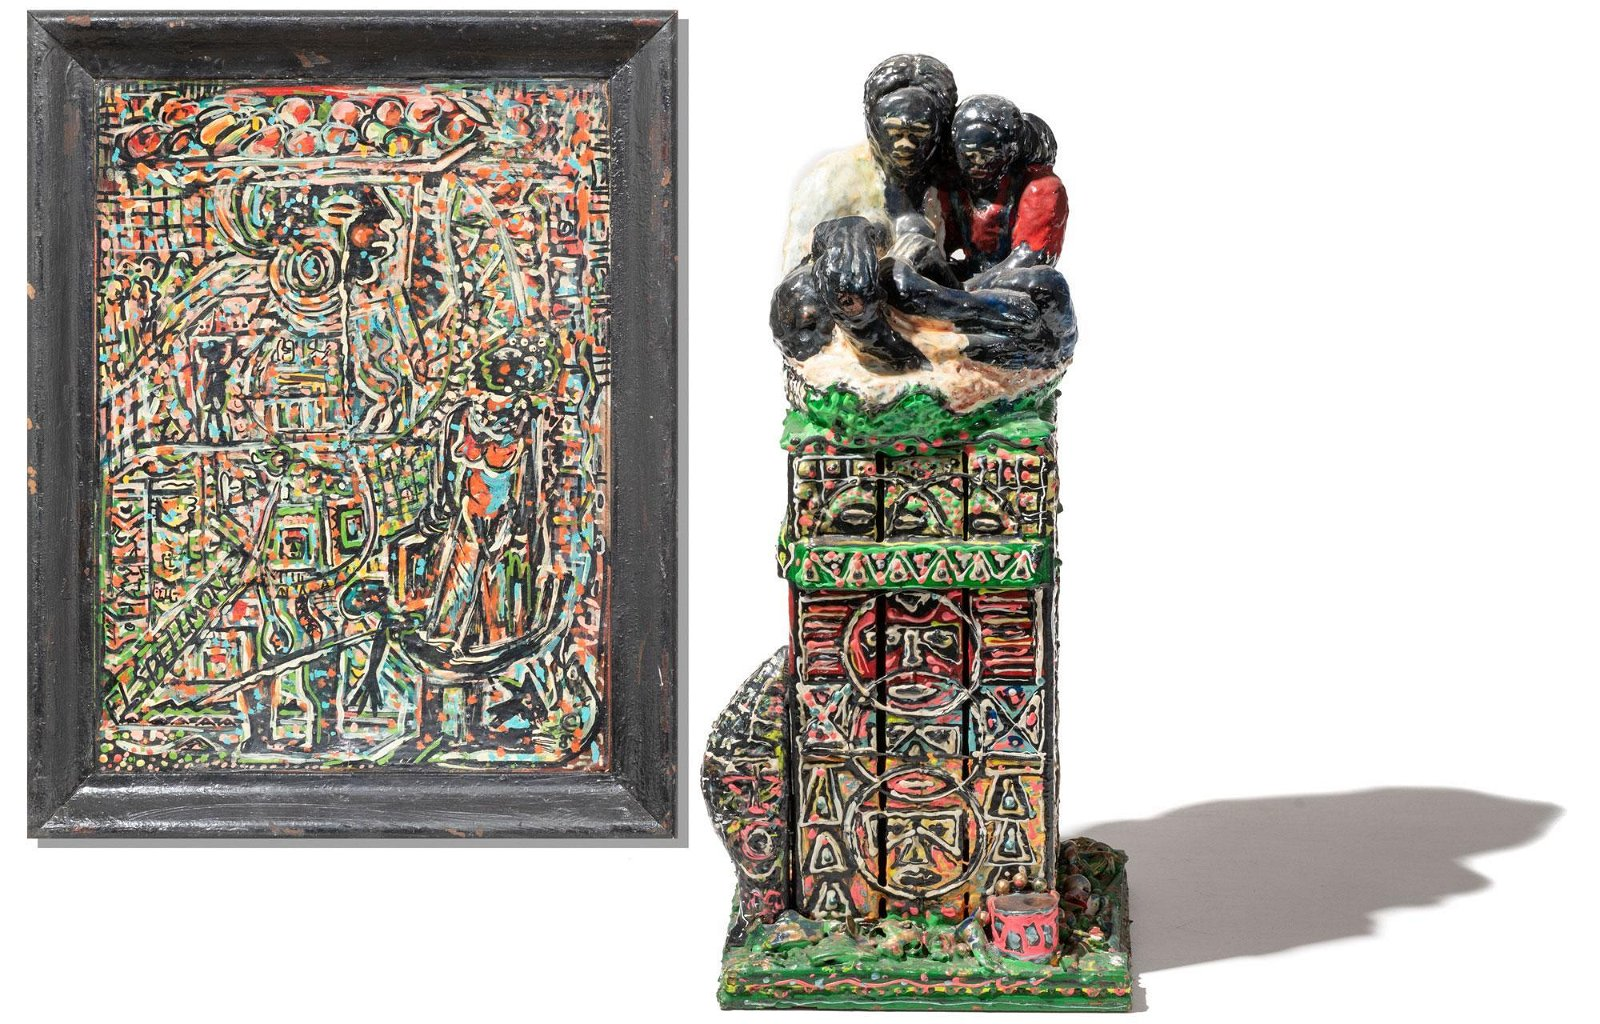 Doc Spellmon, Pair of Works: Painting and Sculpture